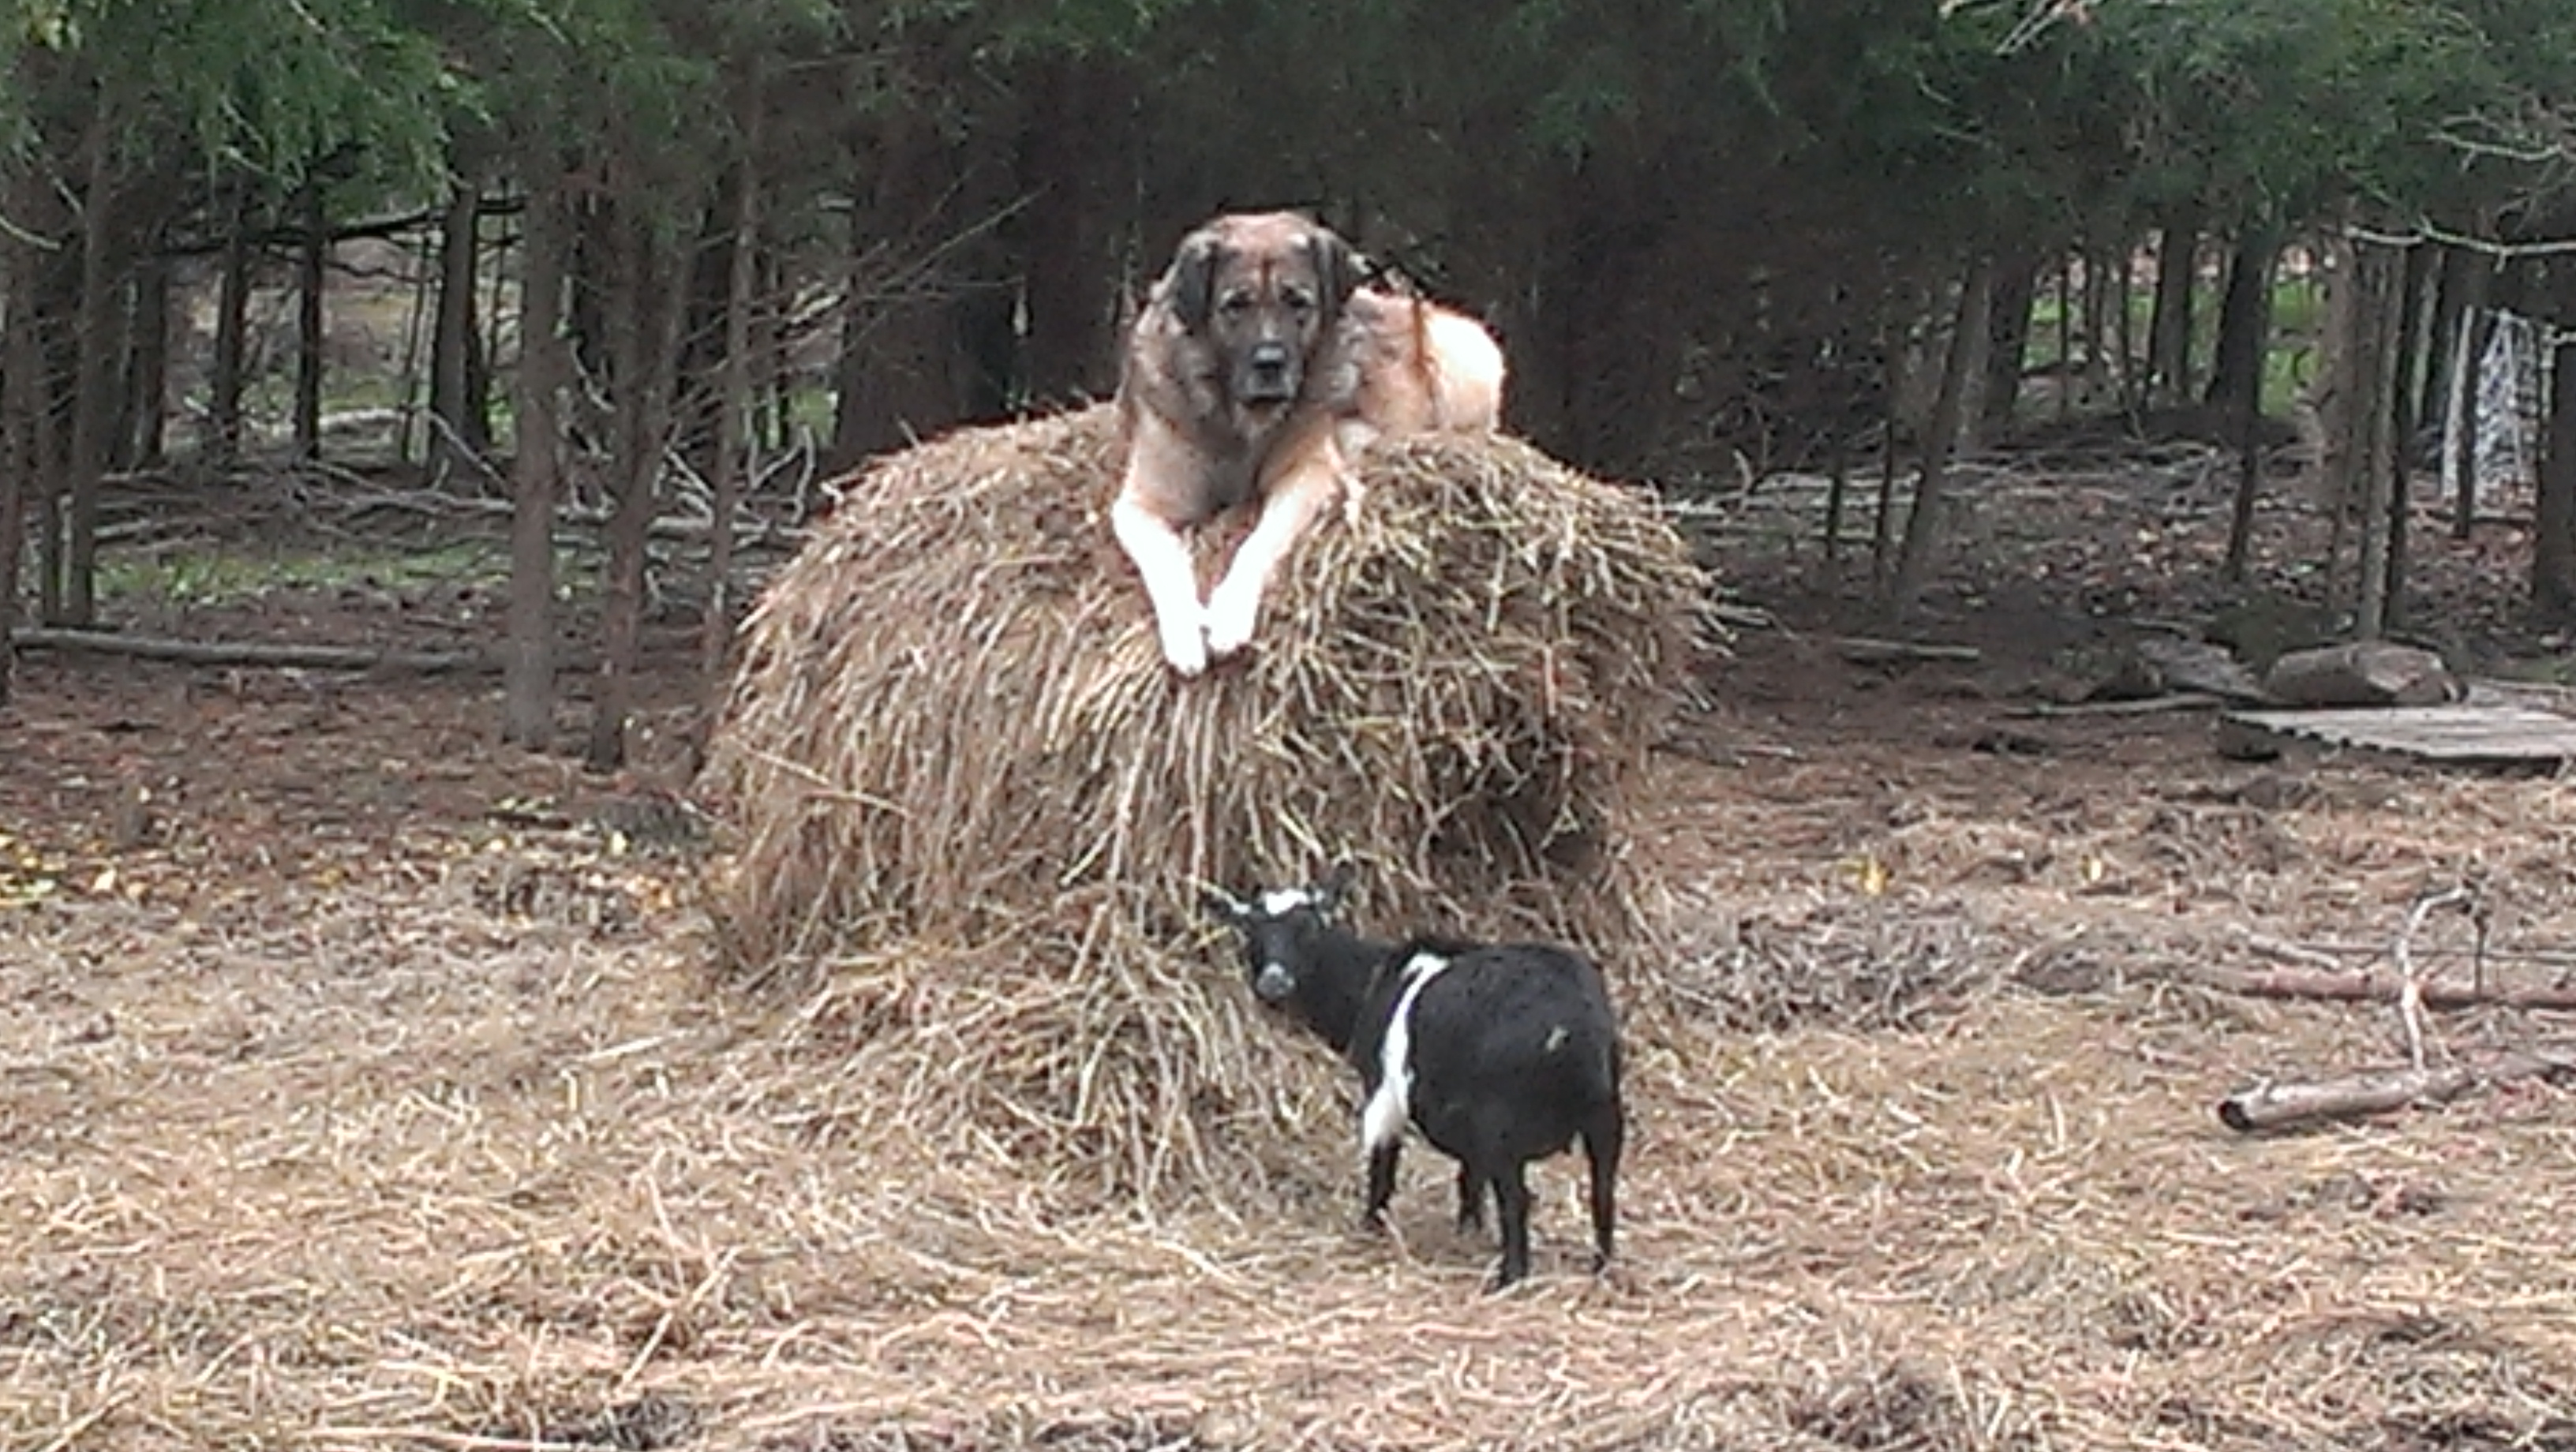 Herc on the haybale watching Comet